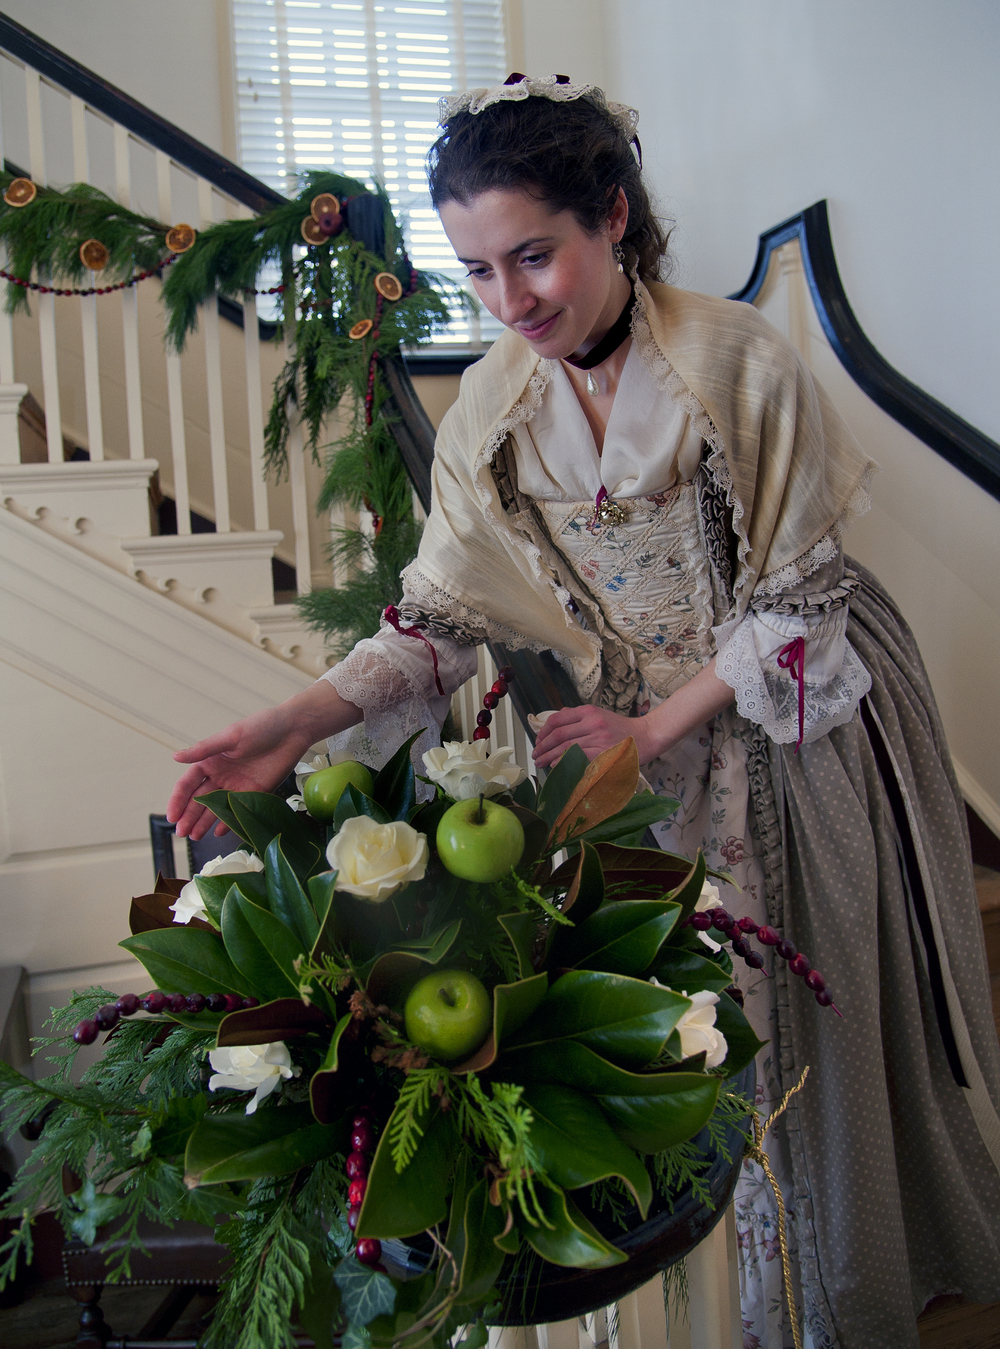 A costumed interpreter prepares to greet visitors by the elegant staircase